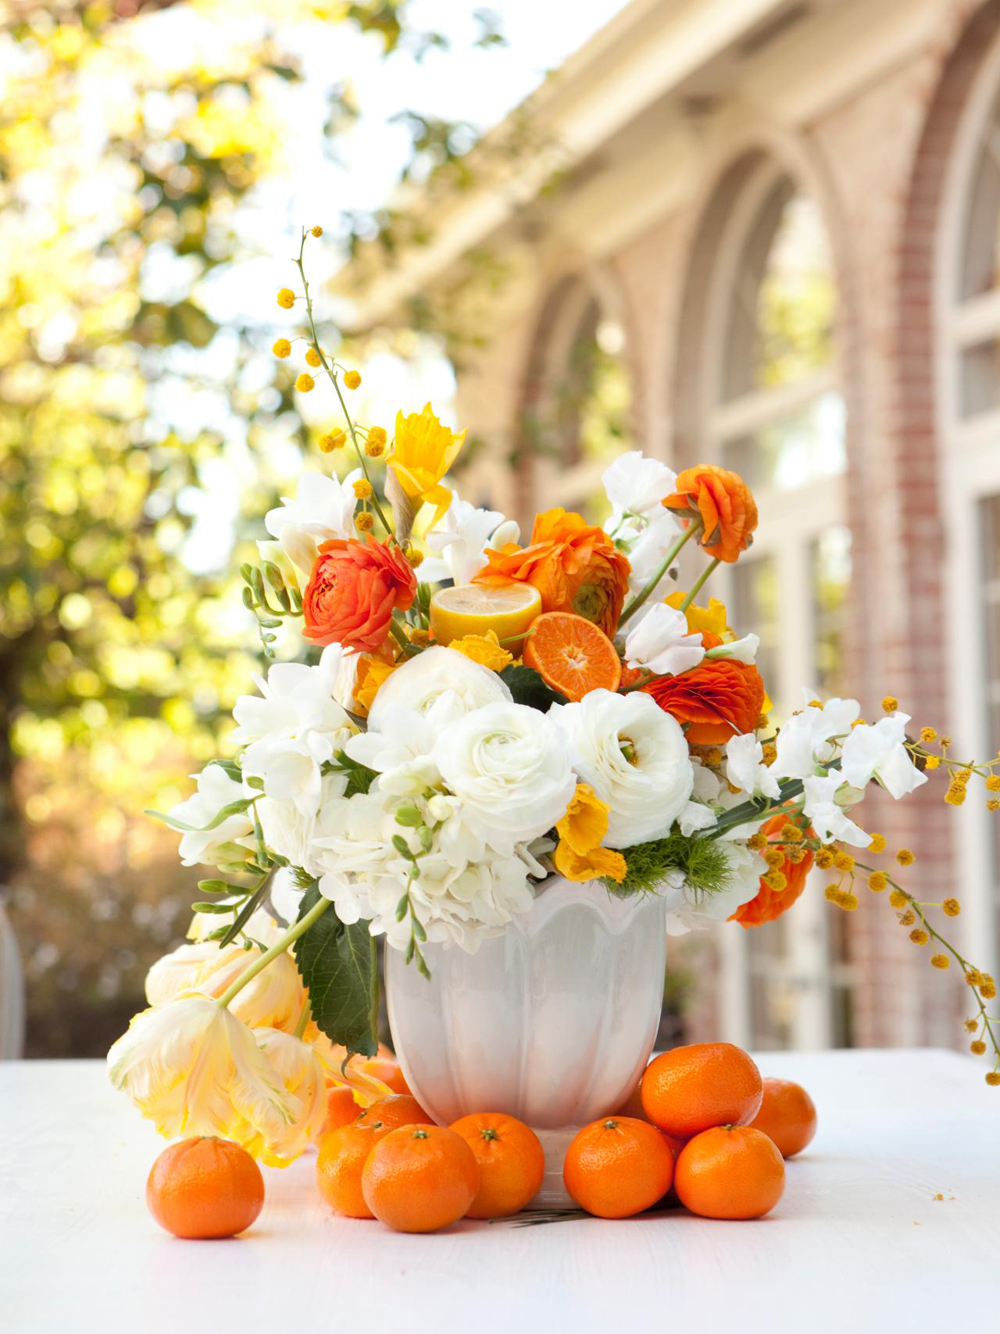 Easter Decorating in Orange